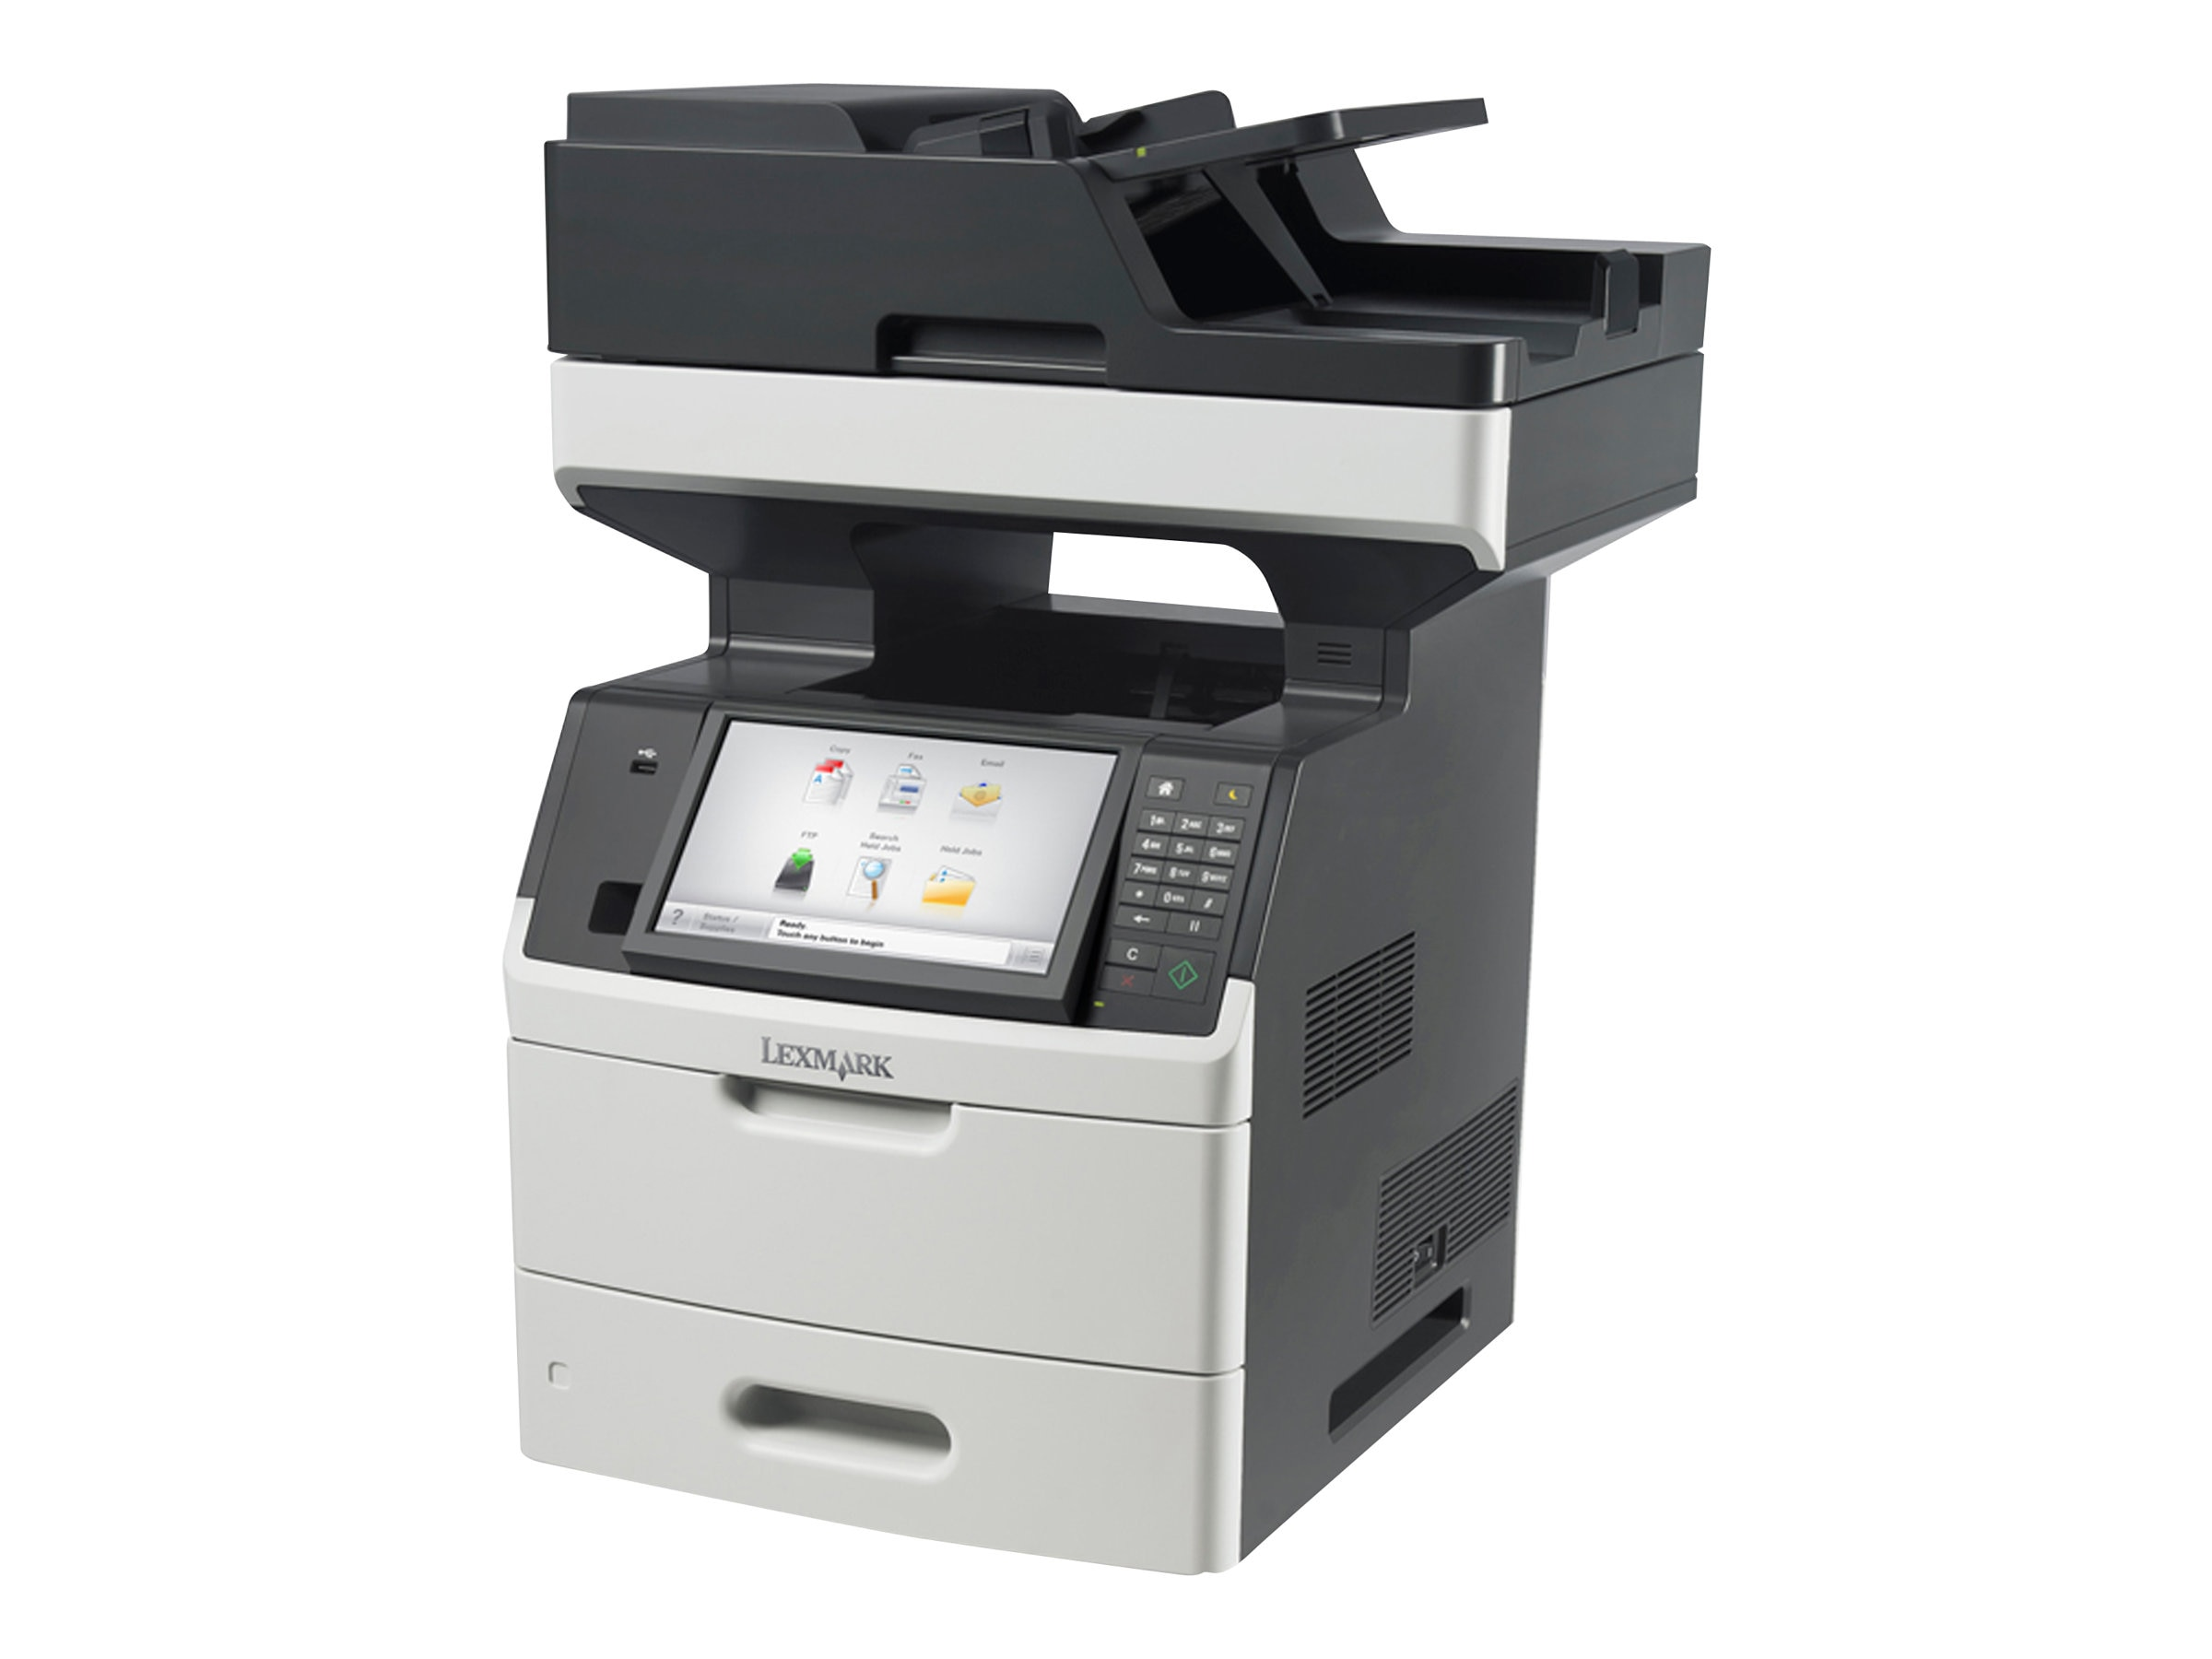 Lexmark MX711dhe Monochrome Laser Multifunction Printer, 24TT403, 31025577, MultiFunction - Laser (monochrome)